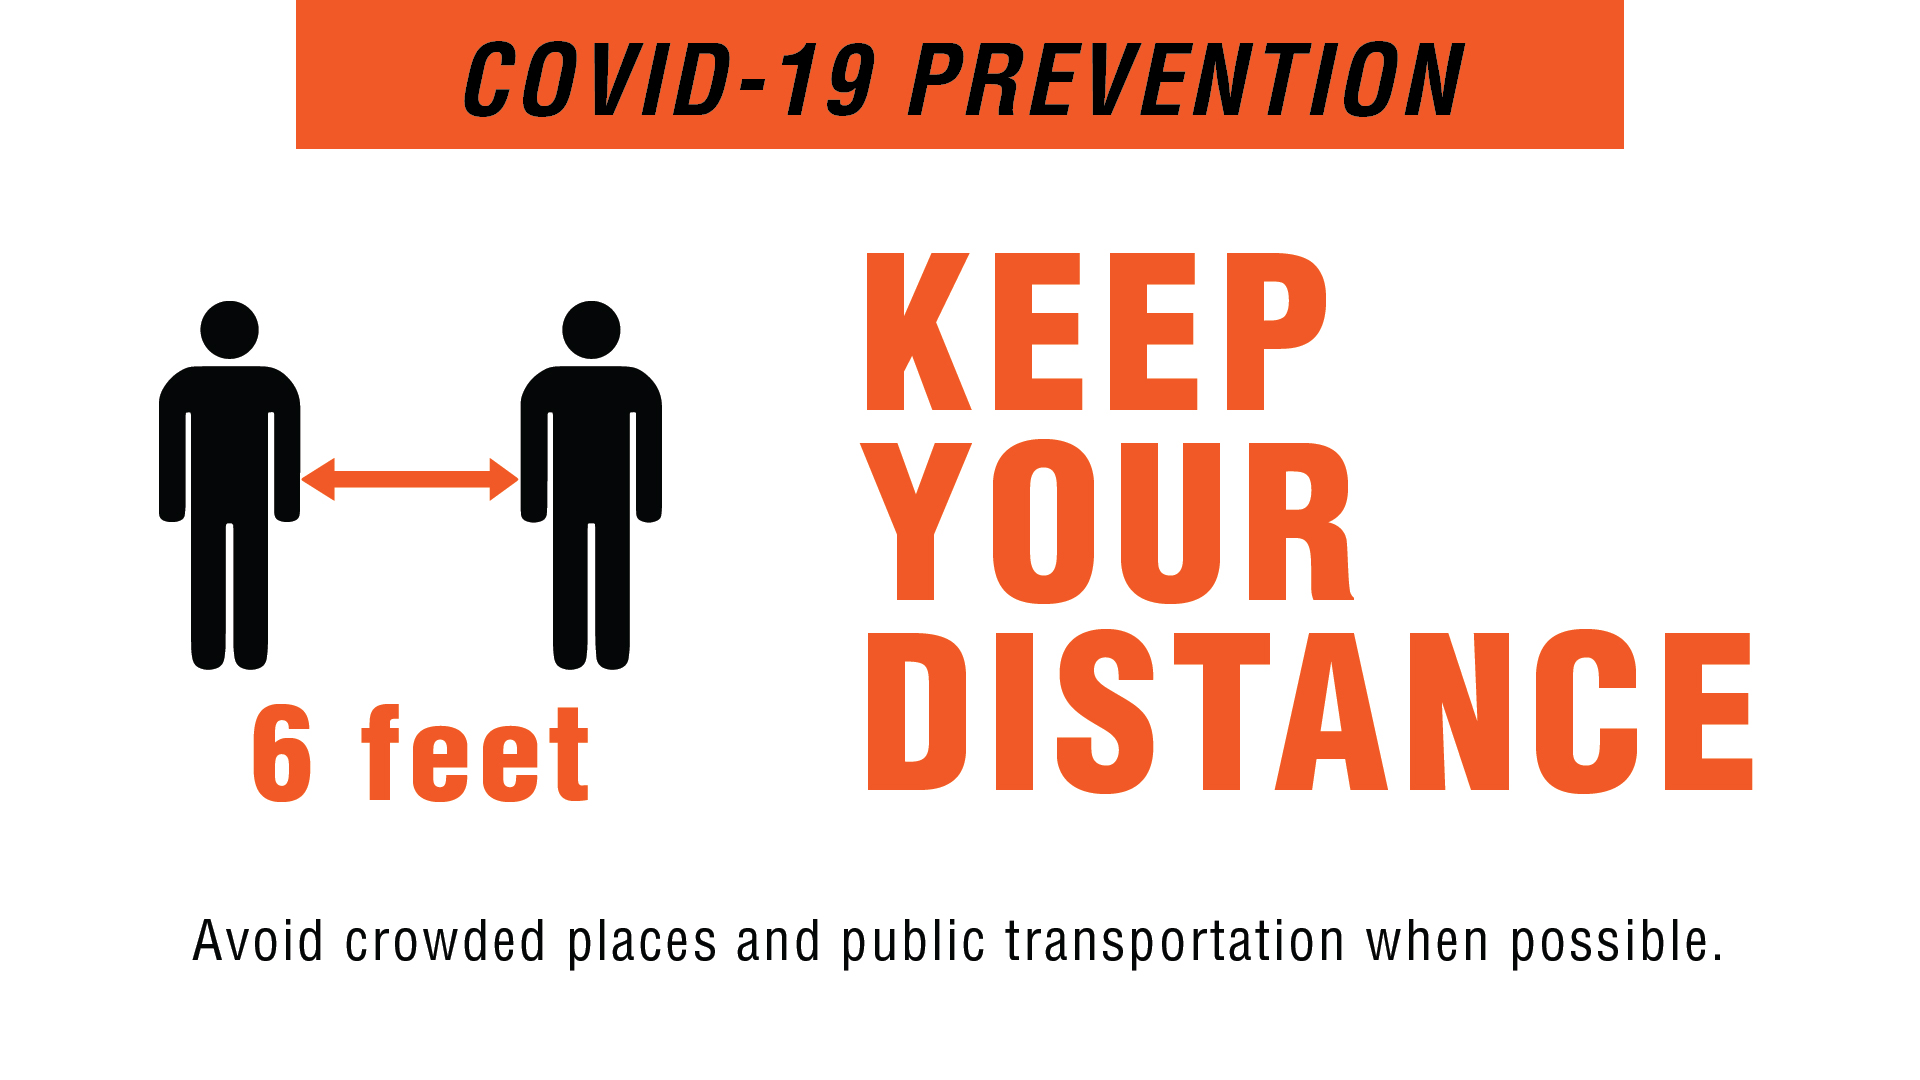 Covid-19 Prevention - Keep Your Distance Digital Signage Image